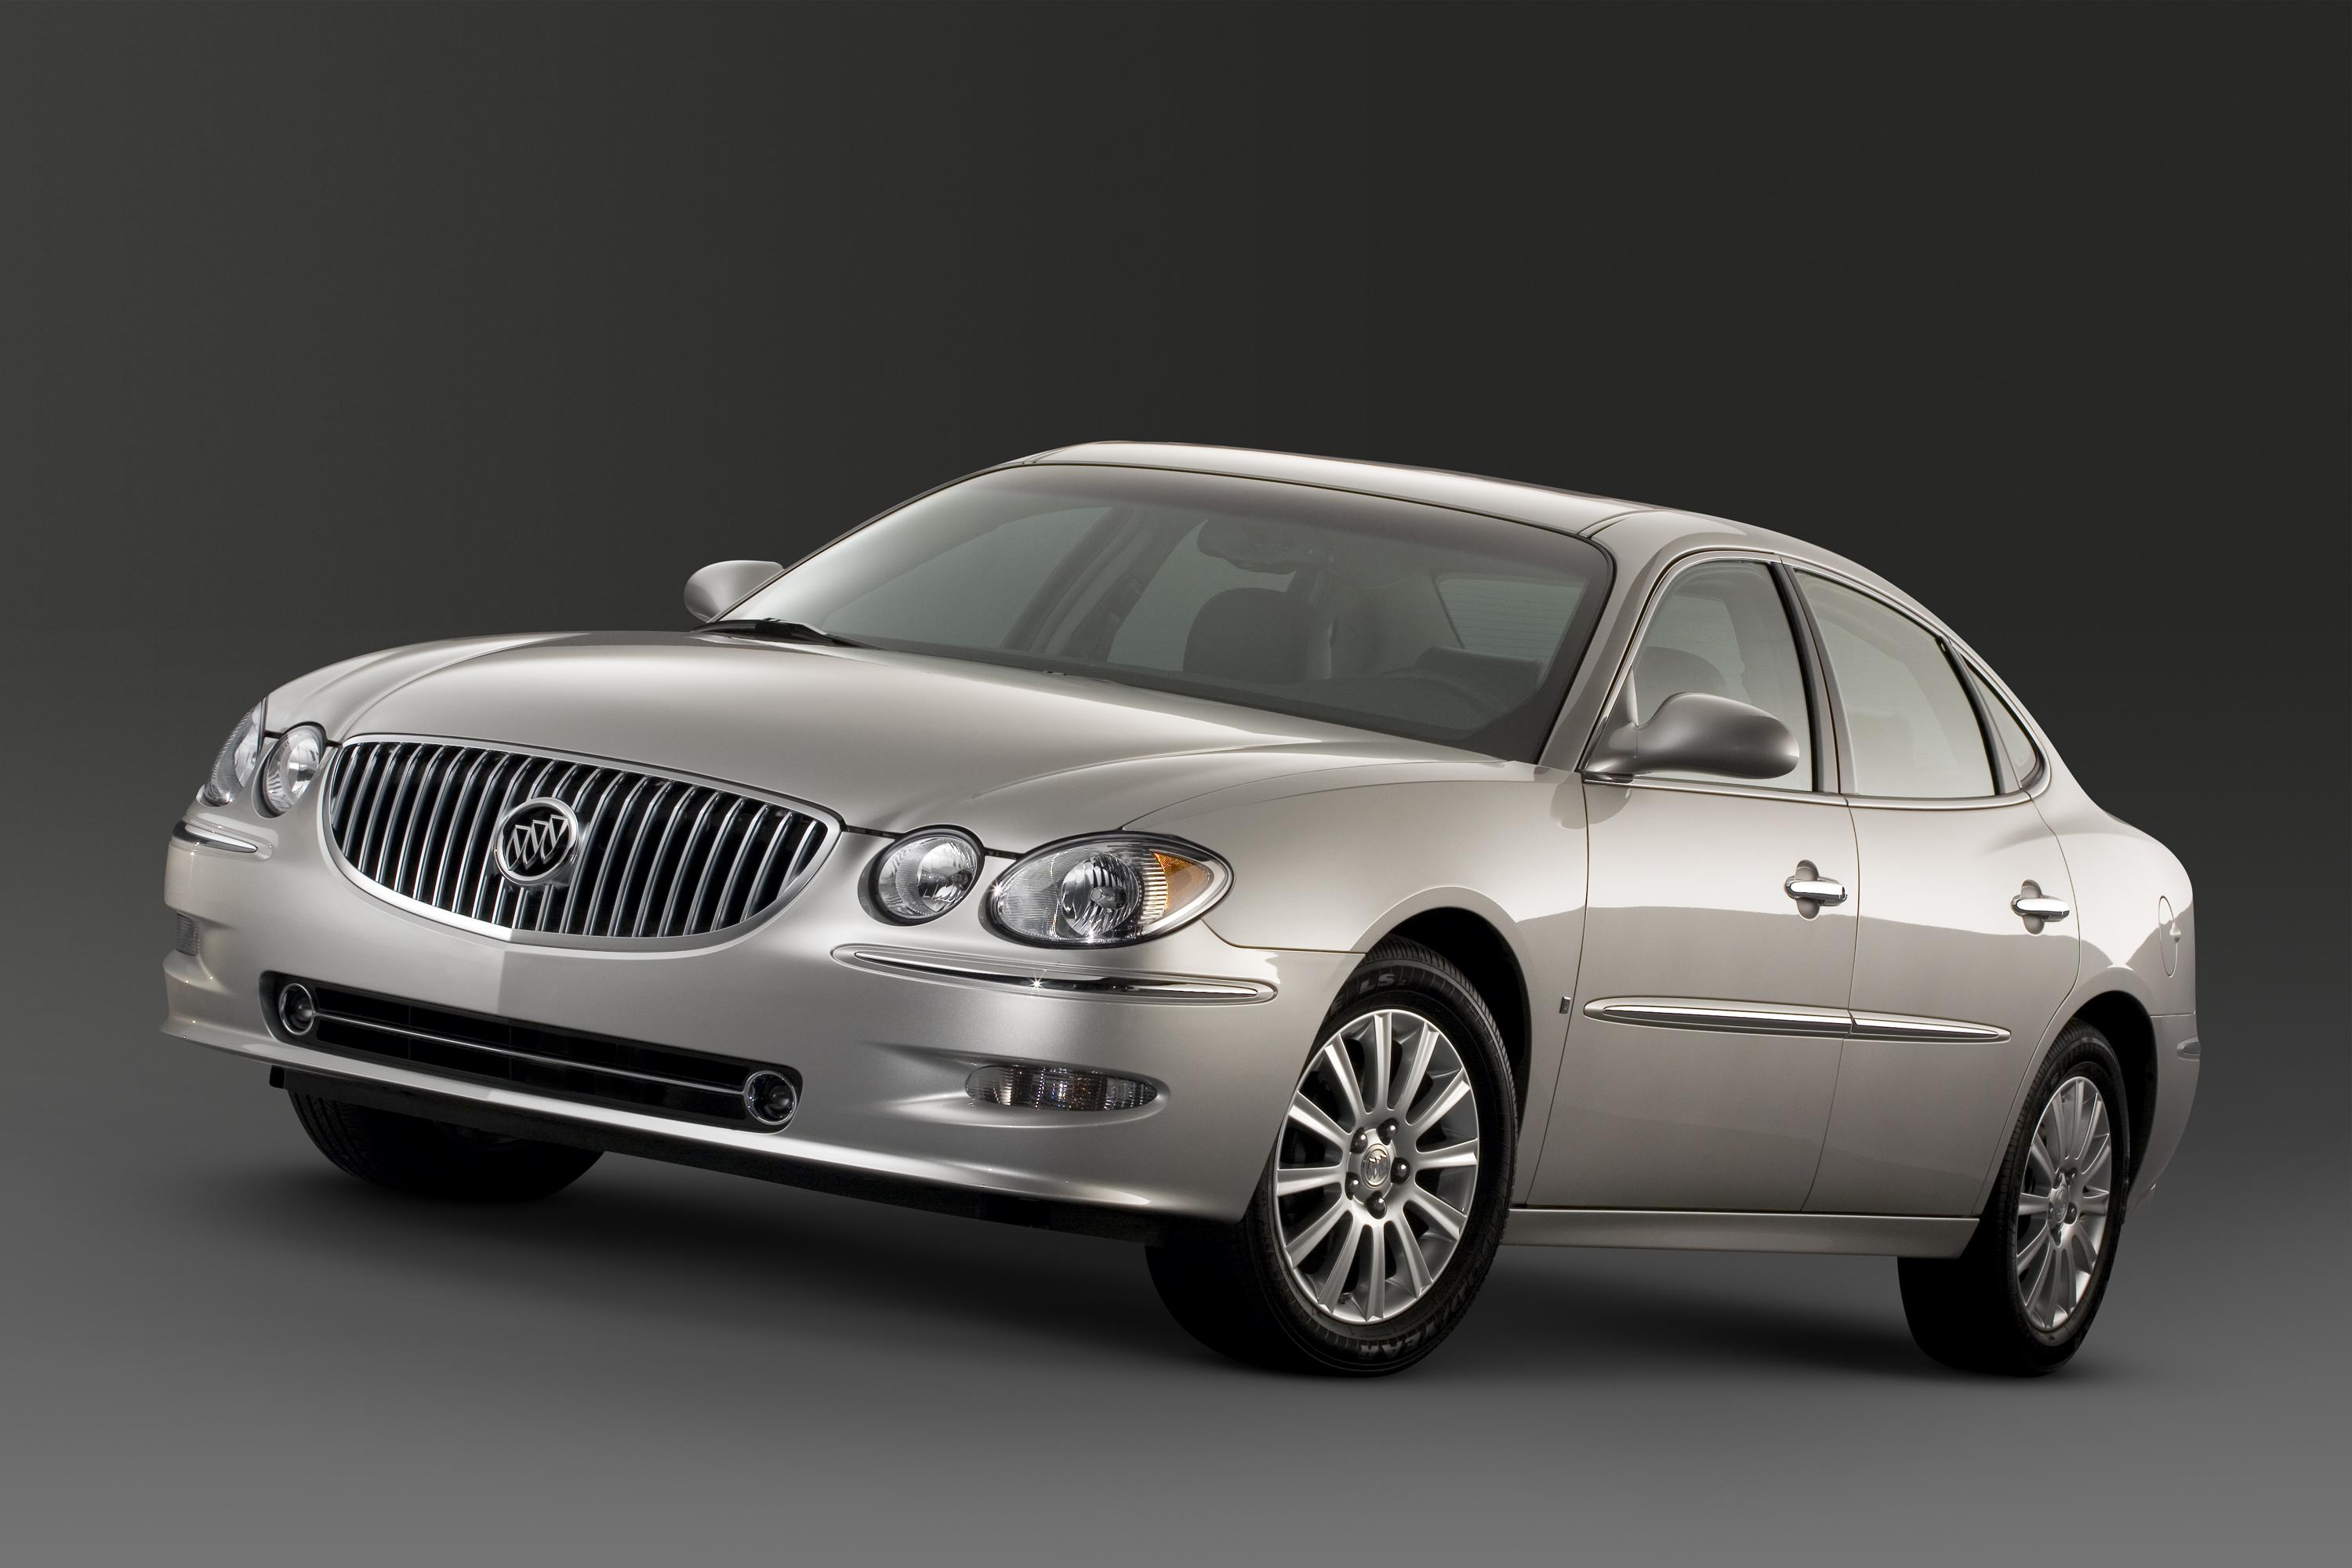 2008 Buick LaCrosse | Top Speed